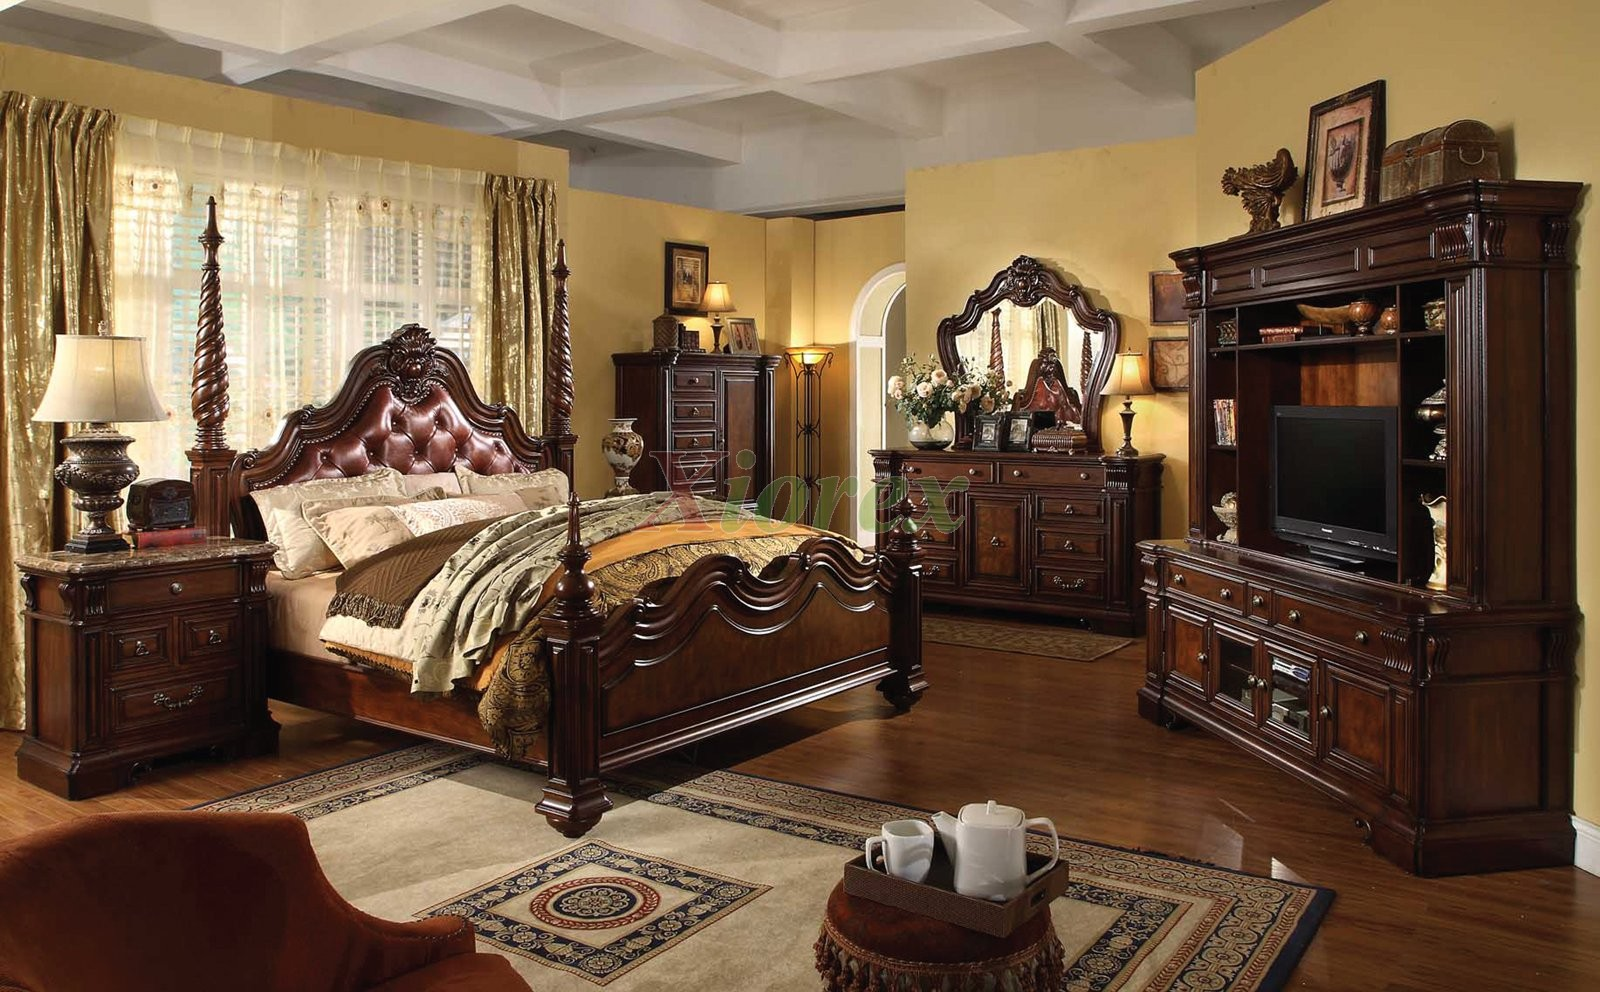 Traditional bedroom furniture interior design meaning for Traditional furniture